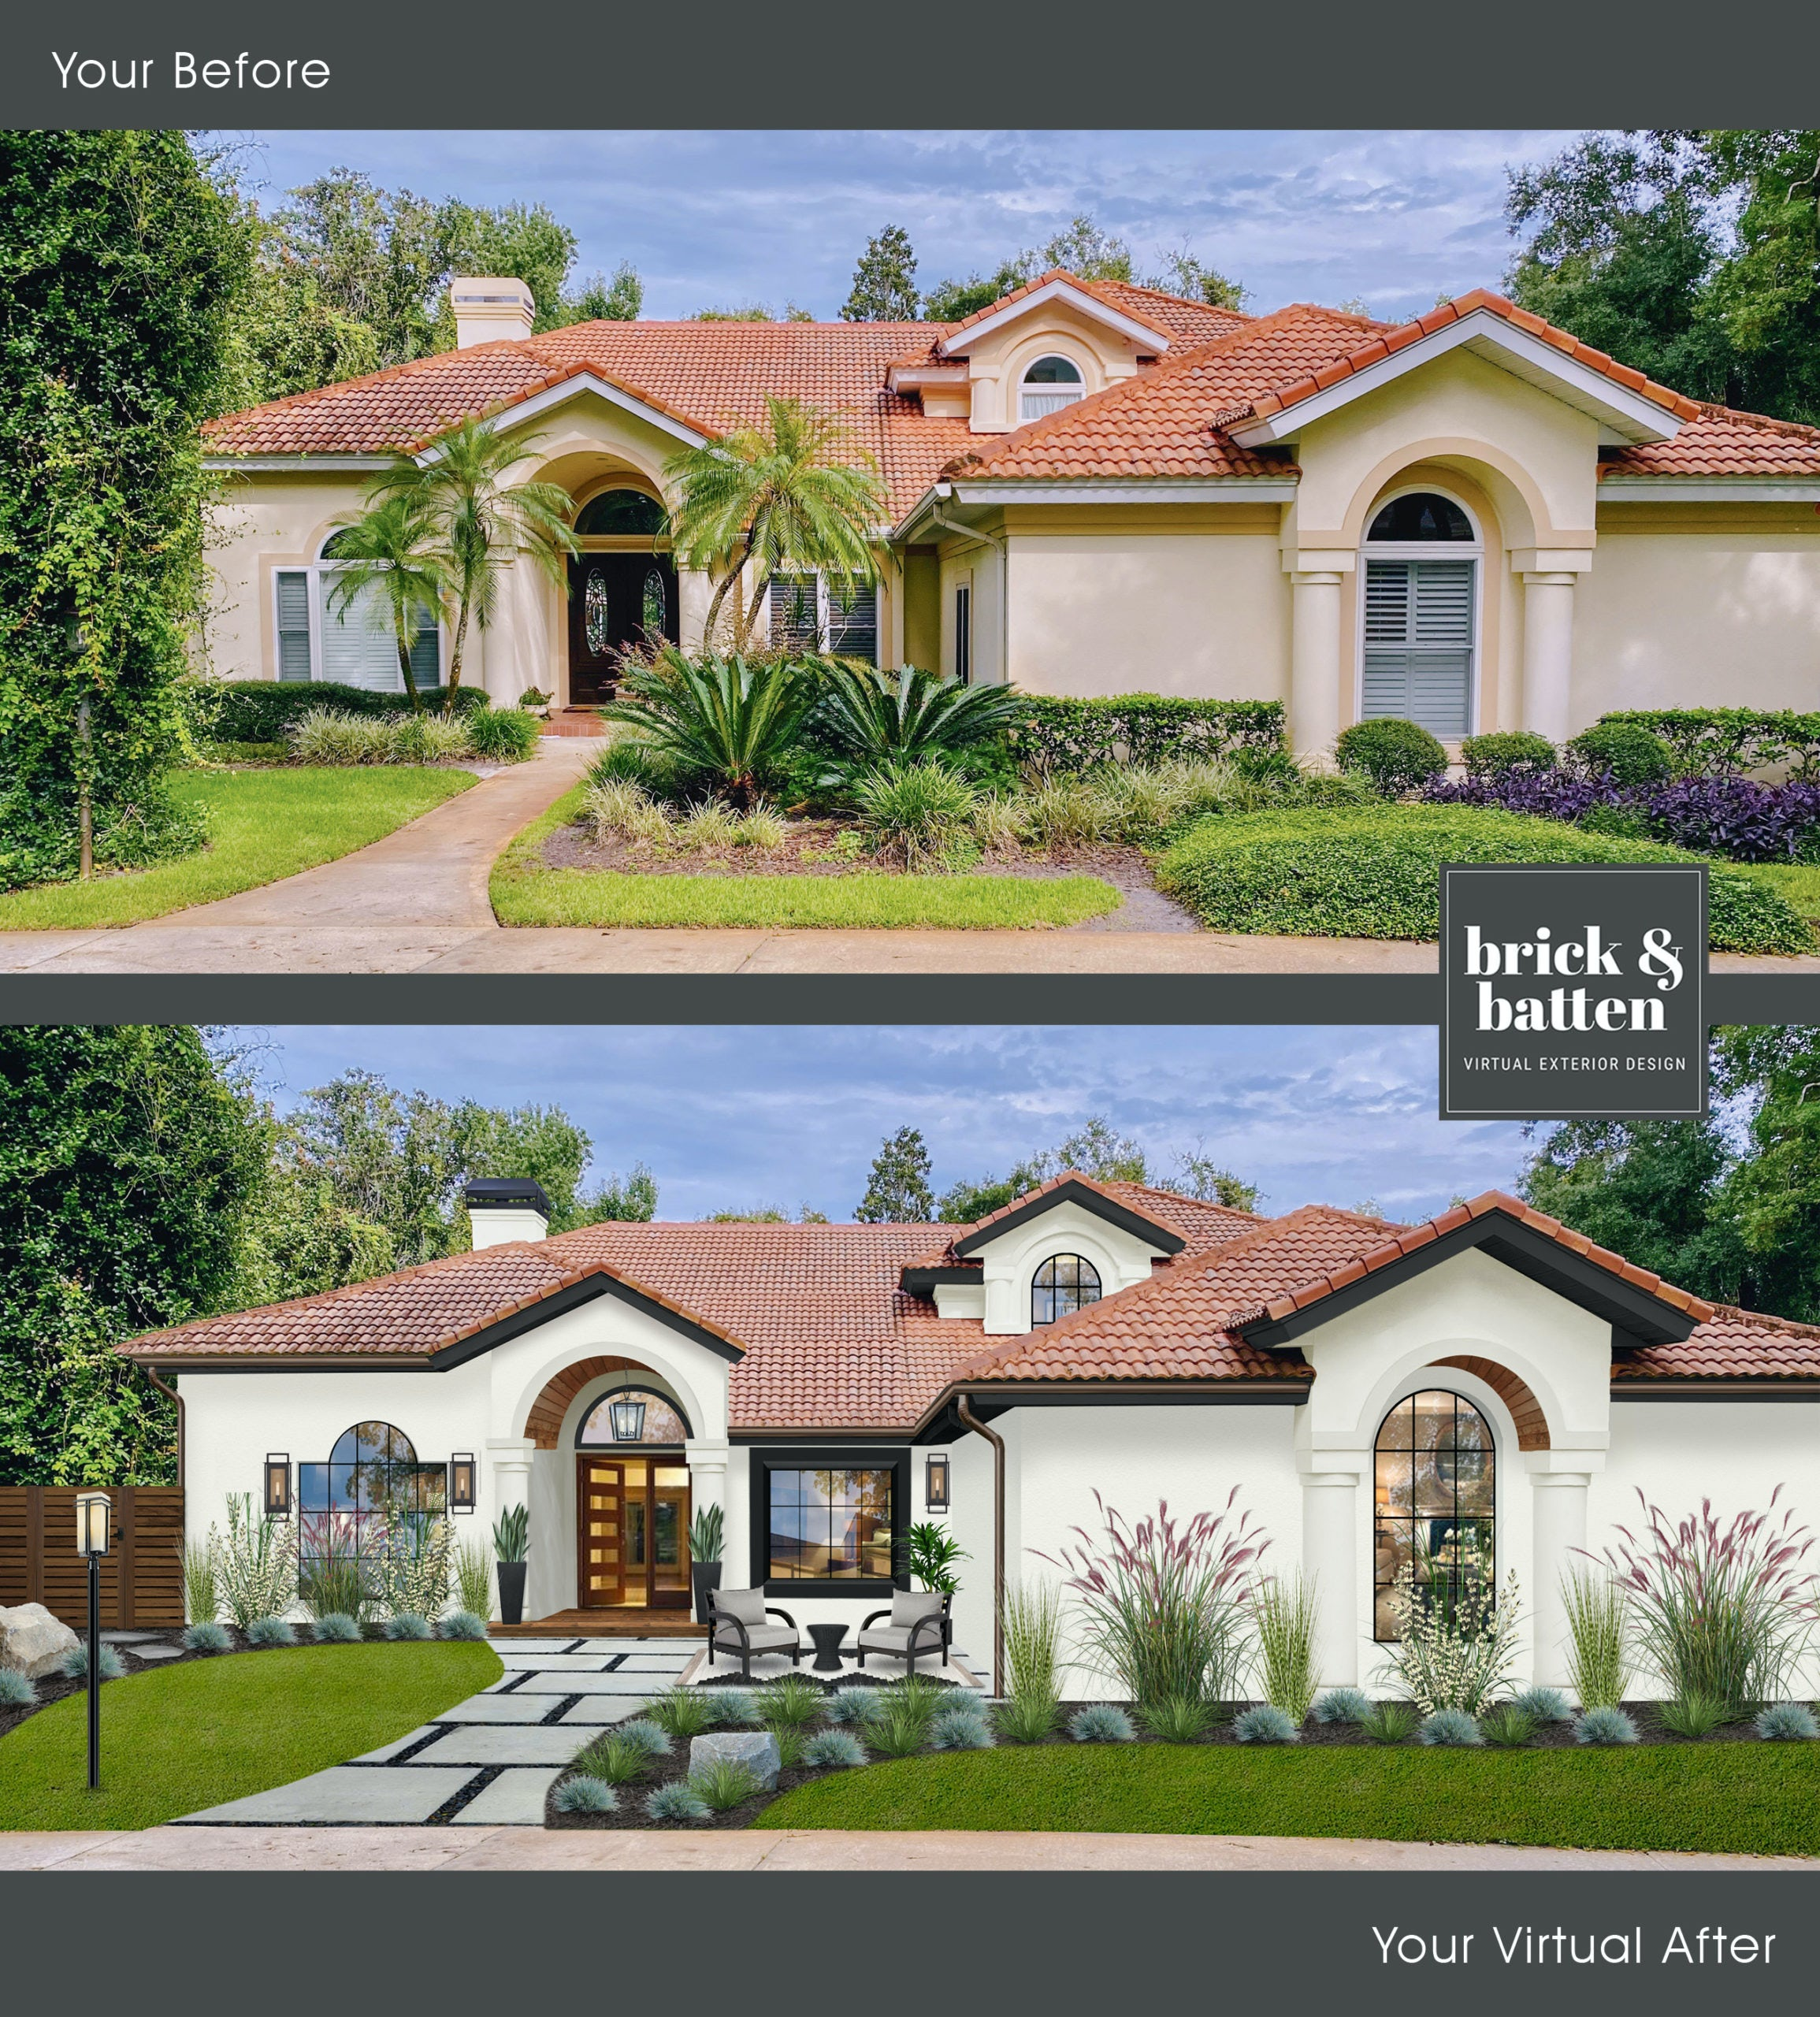 Before and After house with arches